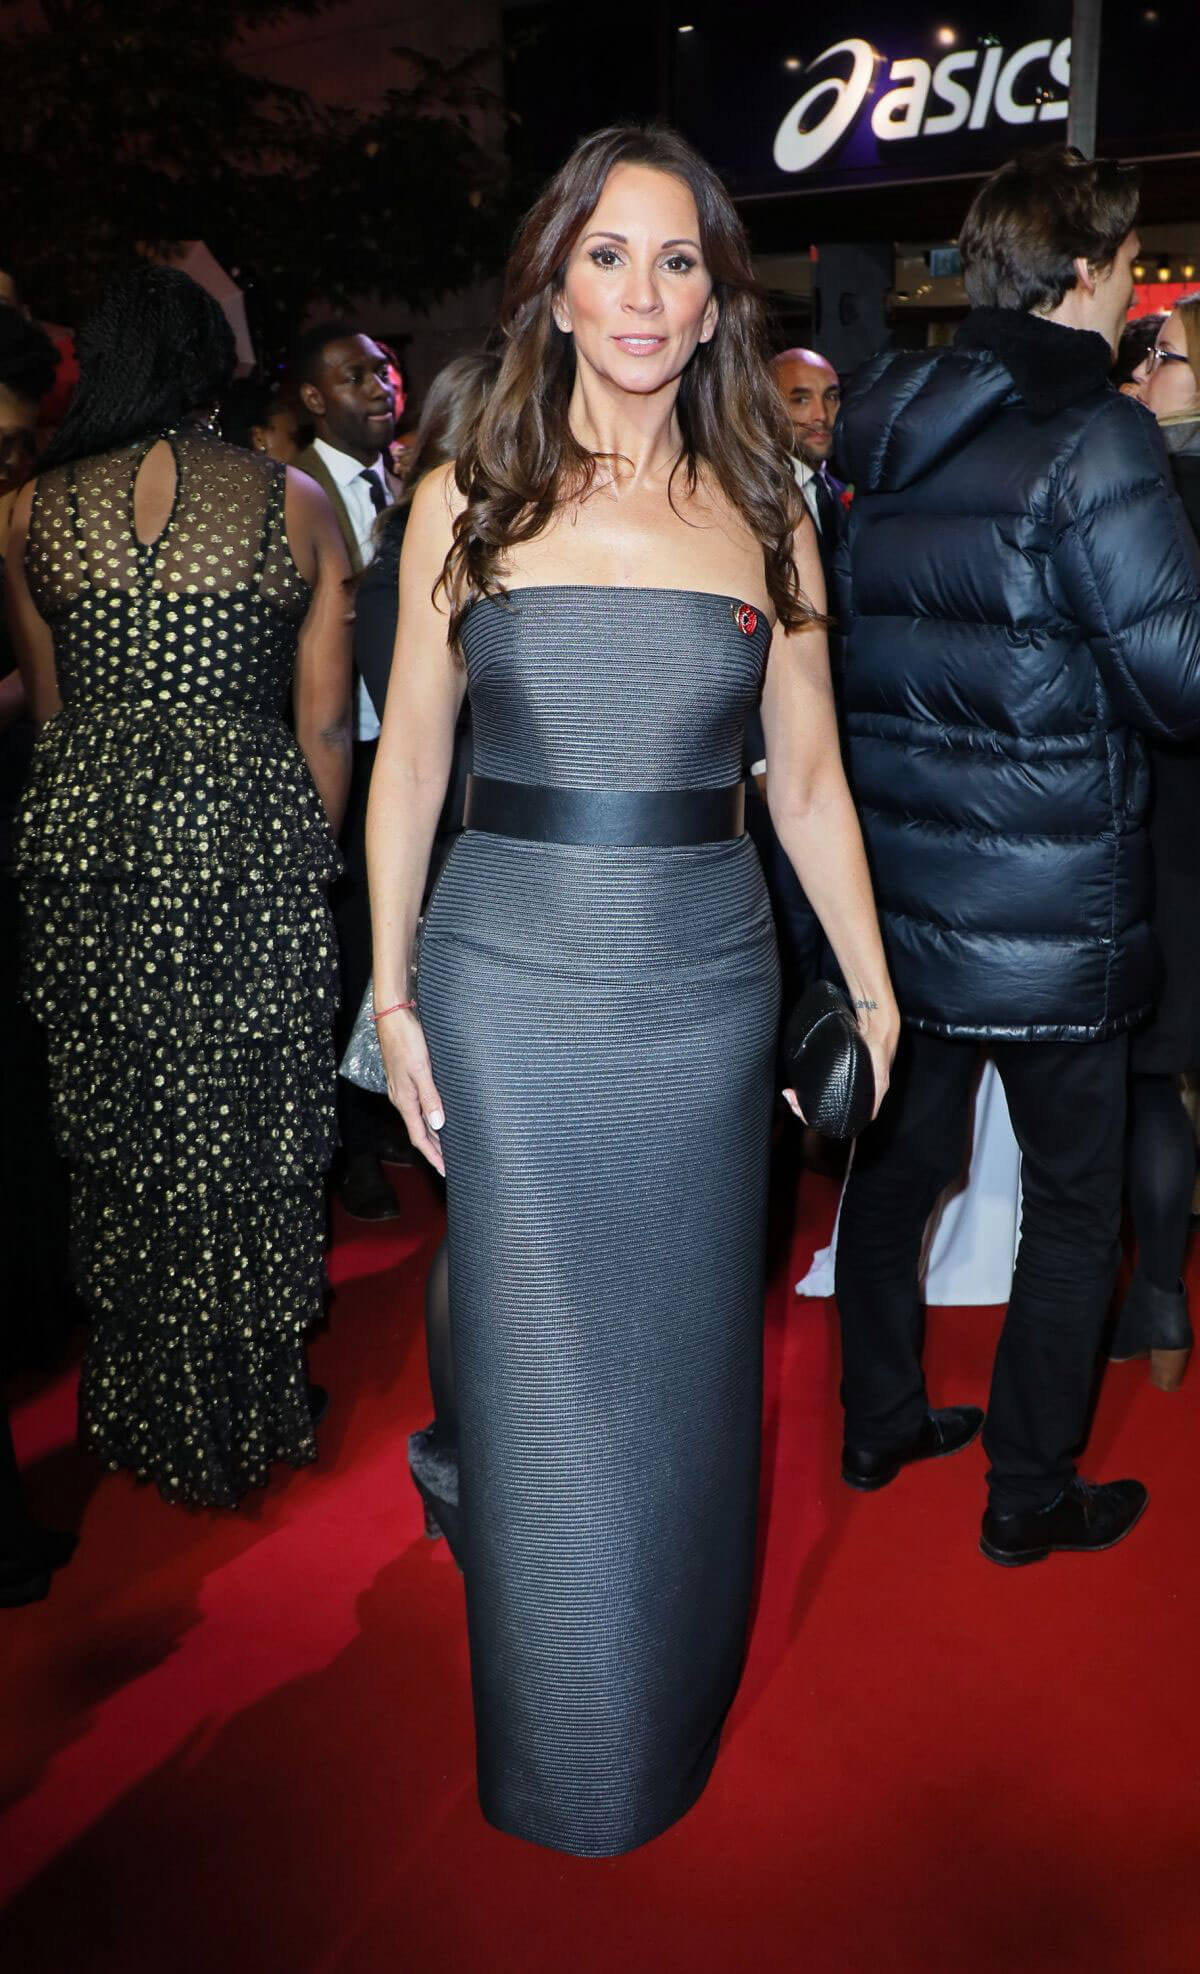 Andrea McLean Stills at ITV Gala Ball in London Images